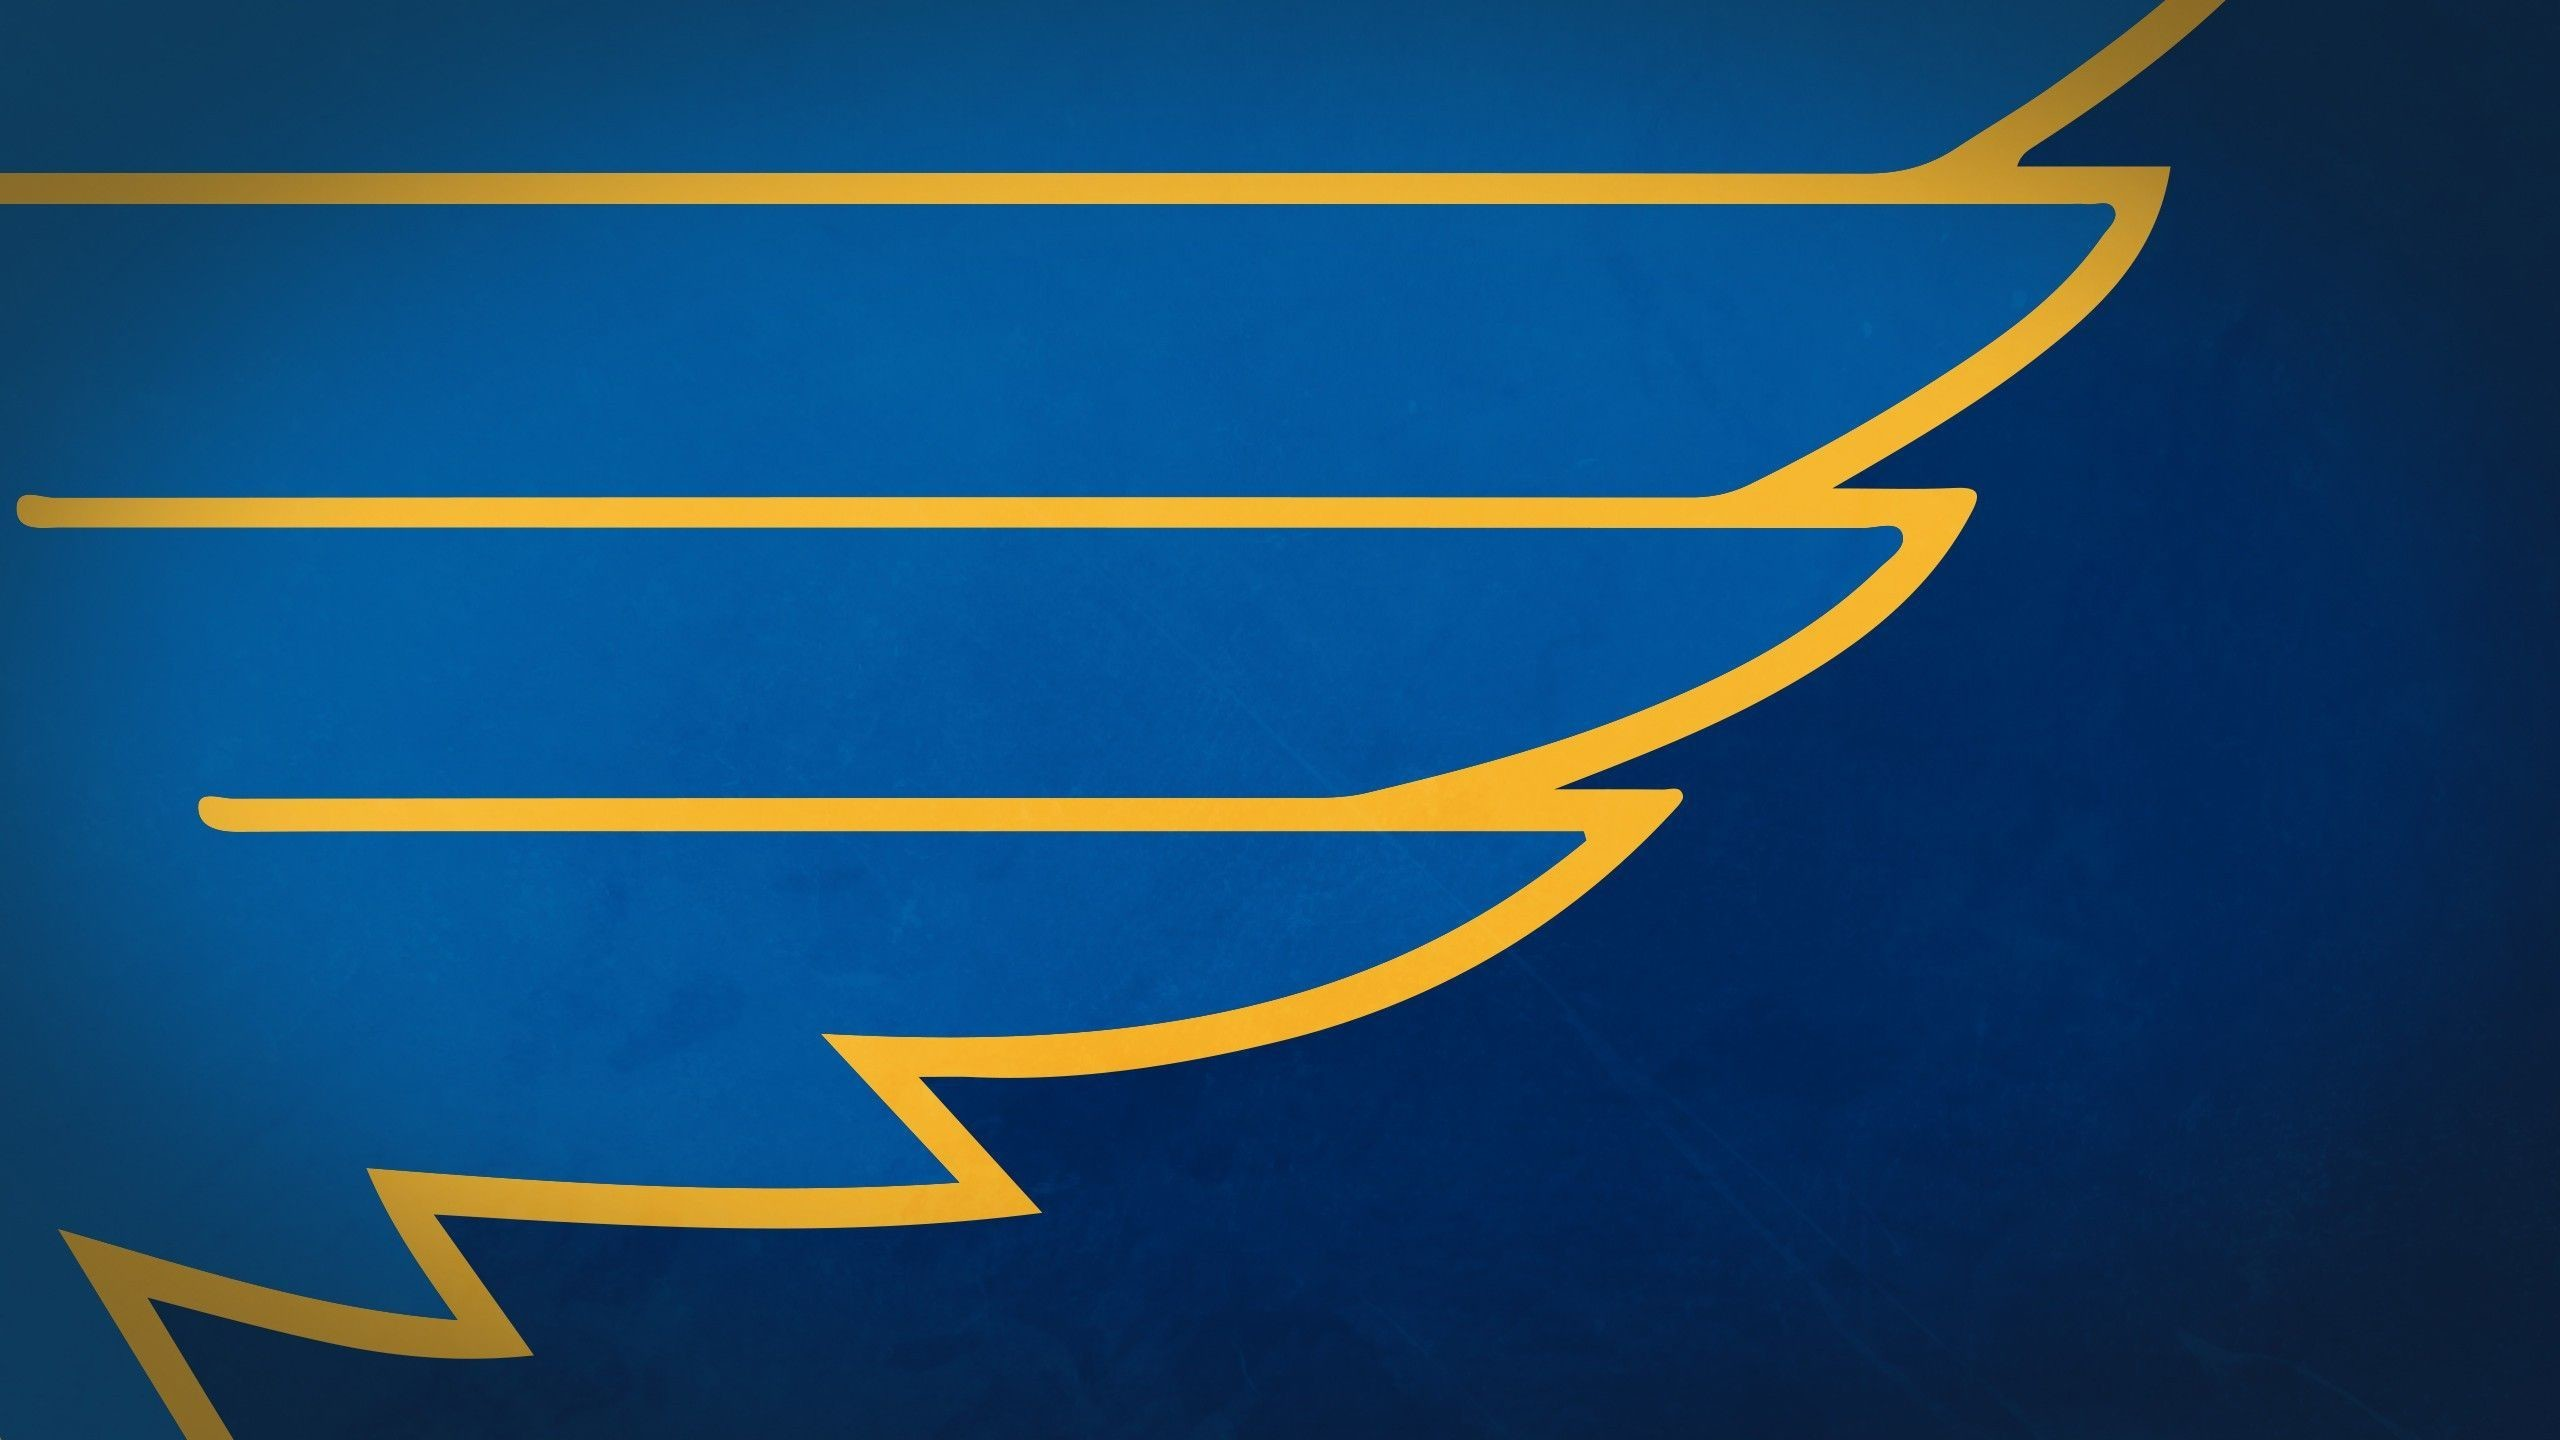 Res: 2560x1440, St Louis Blues Wallpapers - Wallpaper Cave